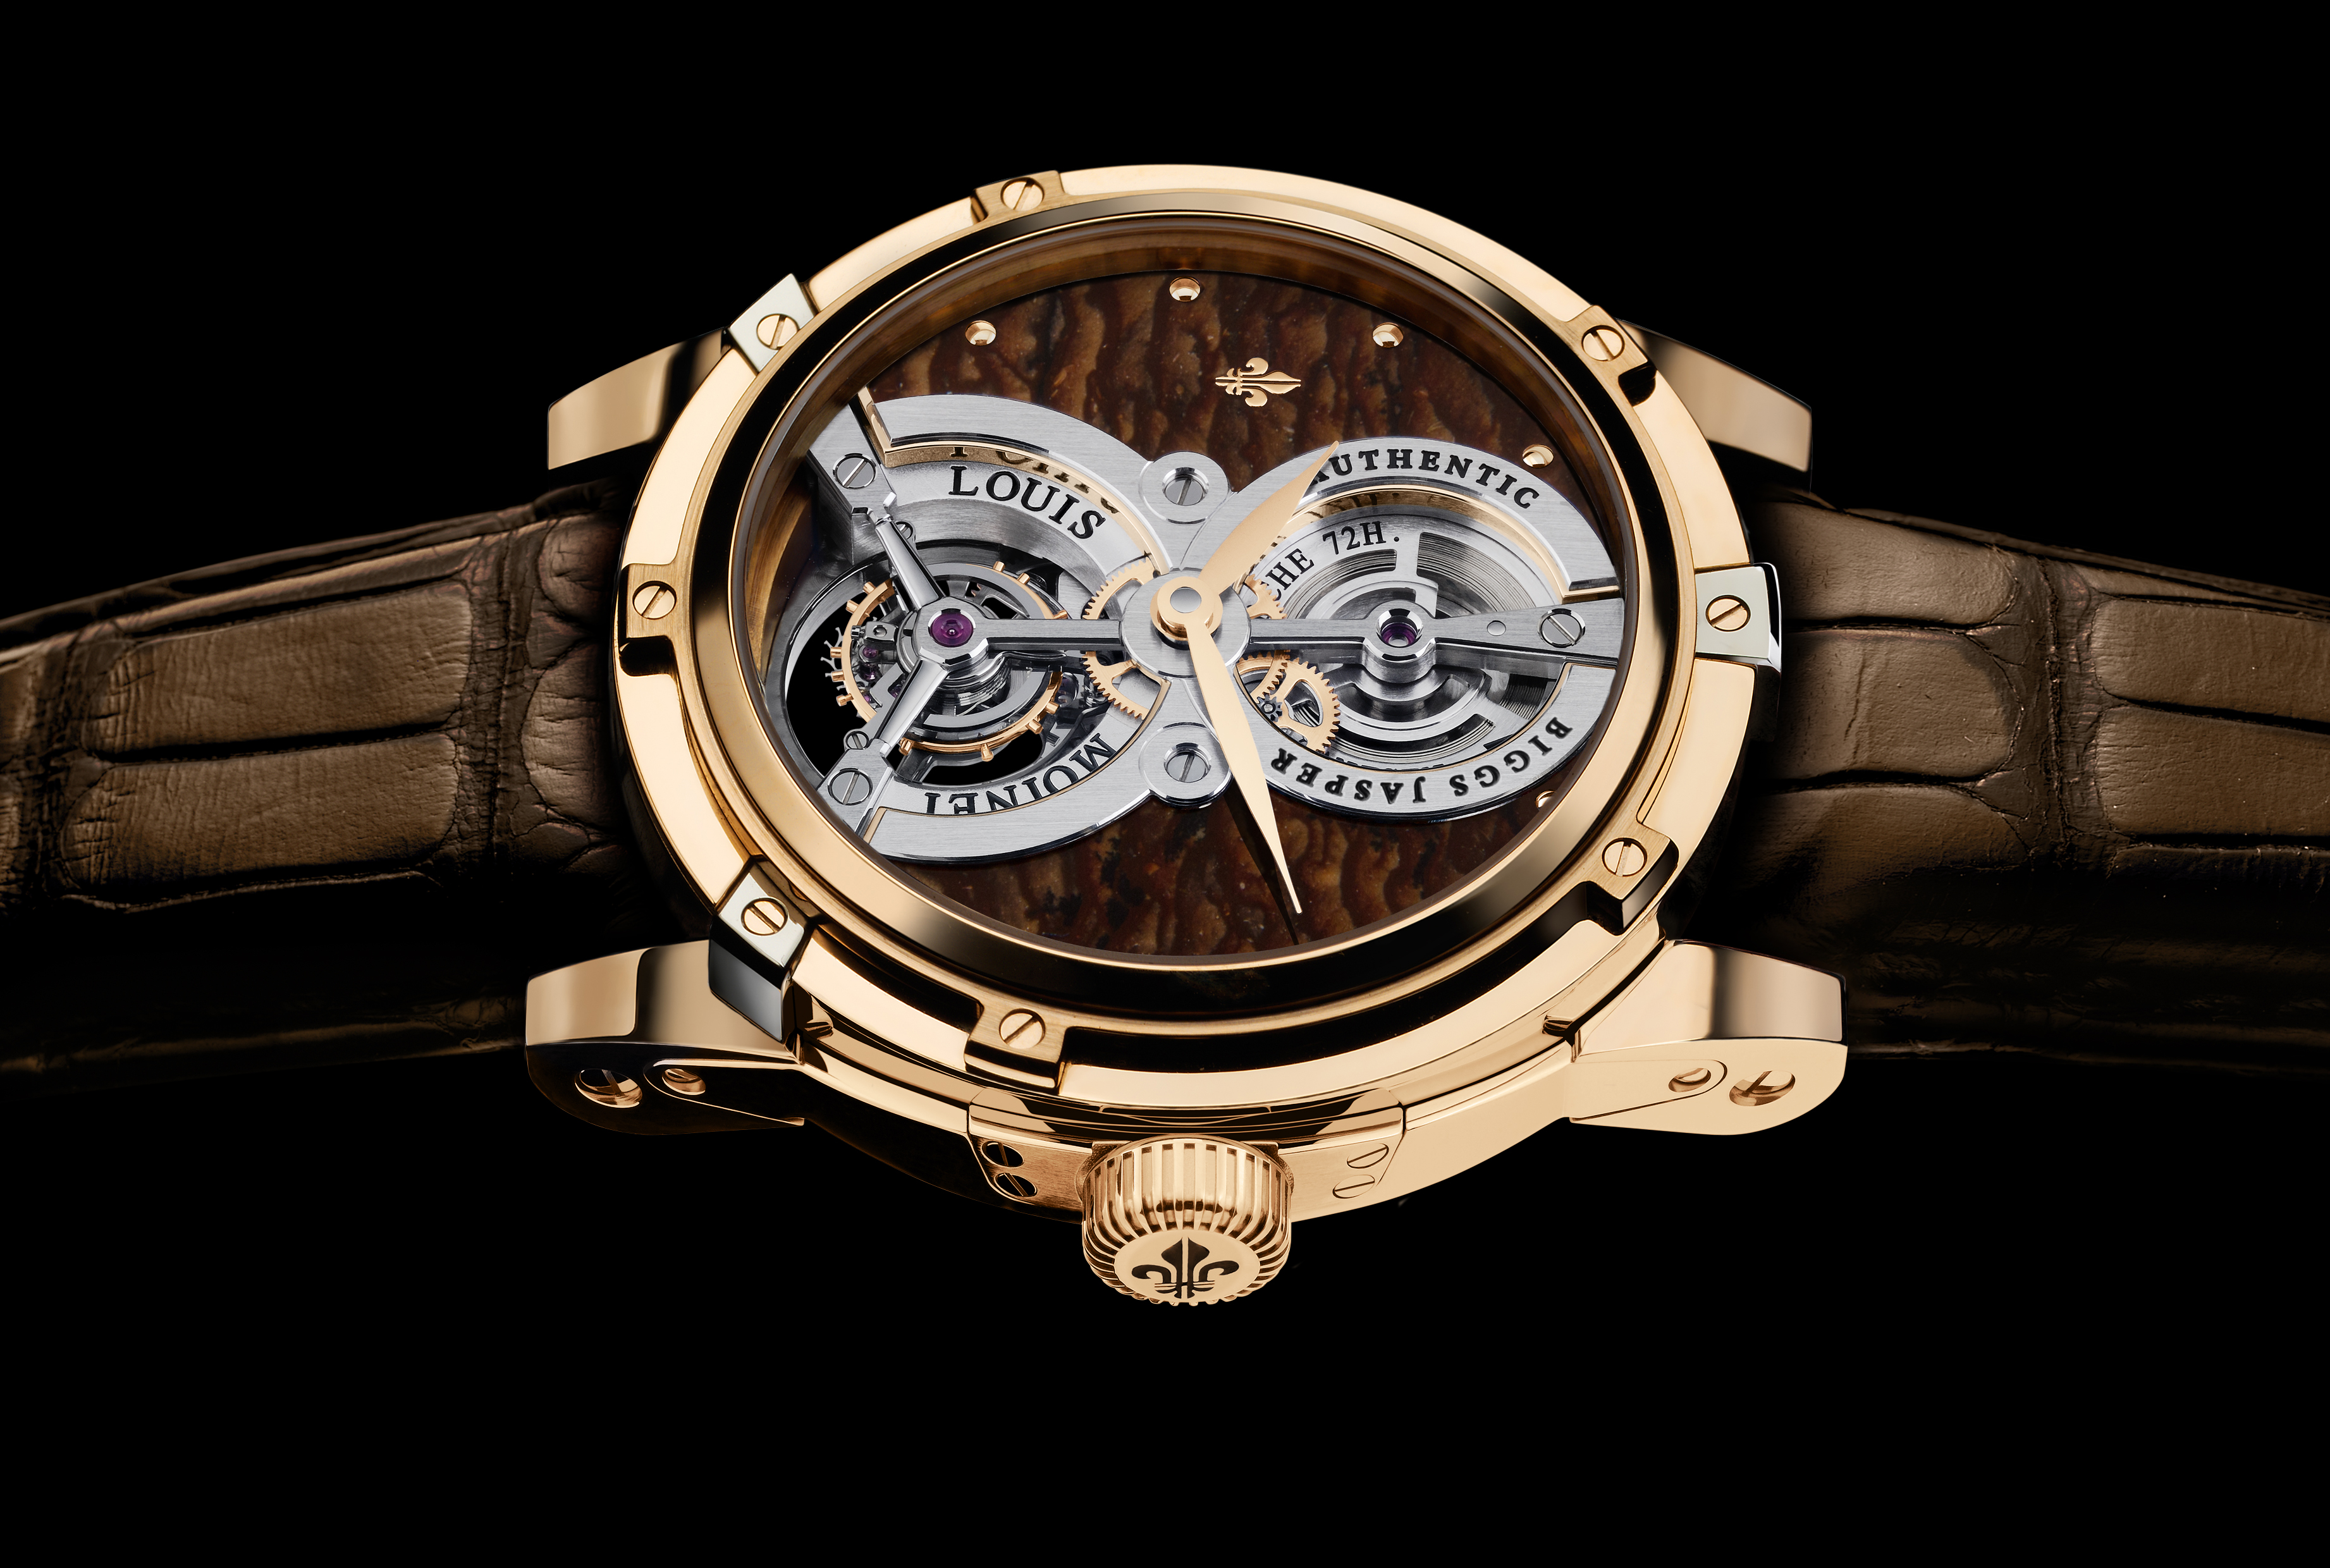 Louis moinet meteoris design is basis of tourbillon mars swiss sports watch for Louis moinet watch